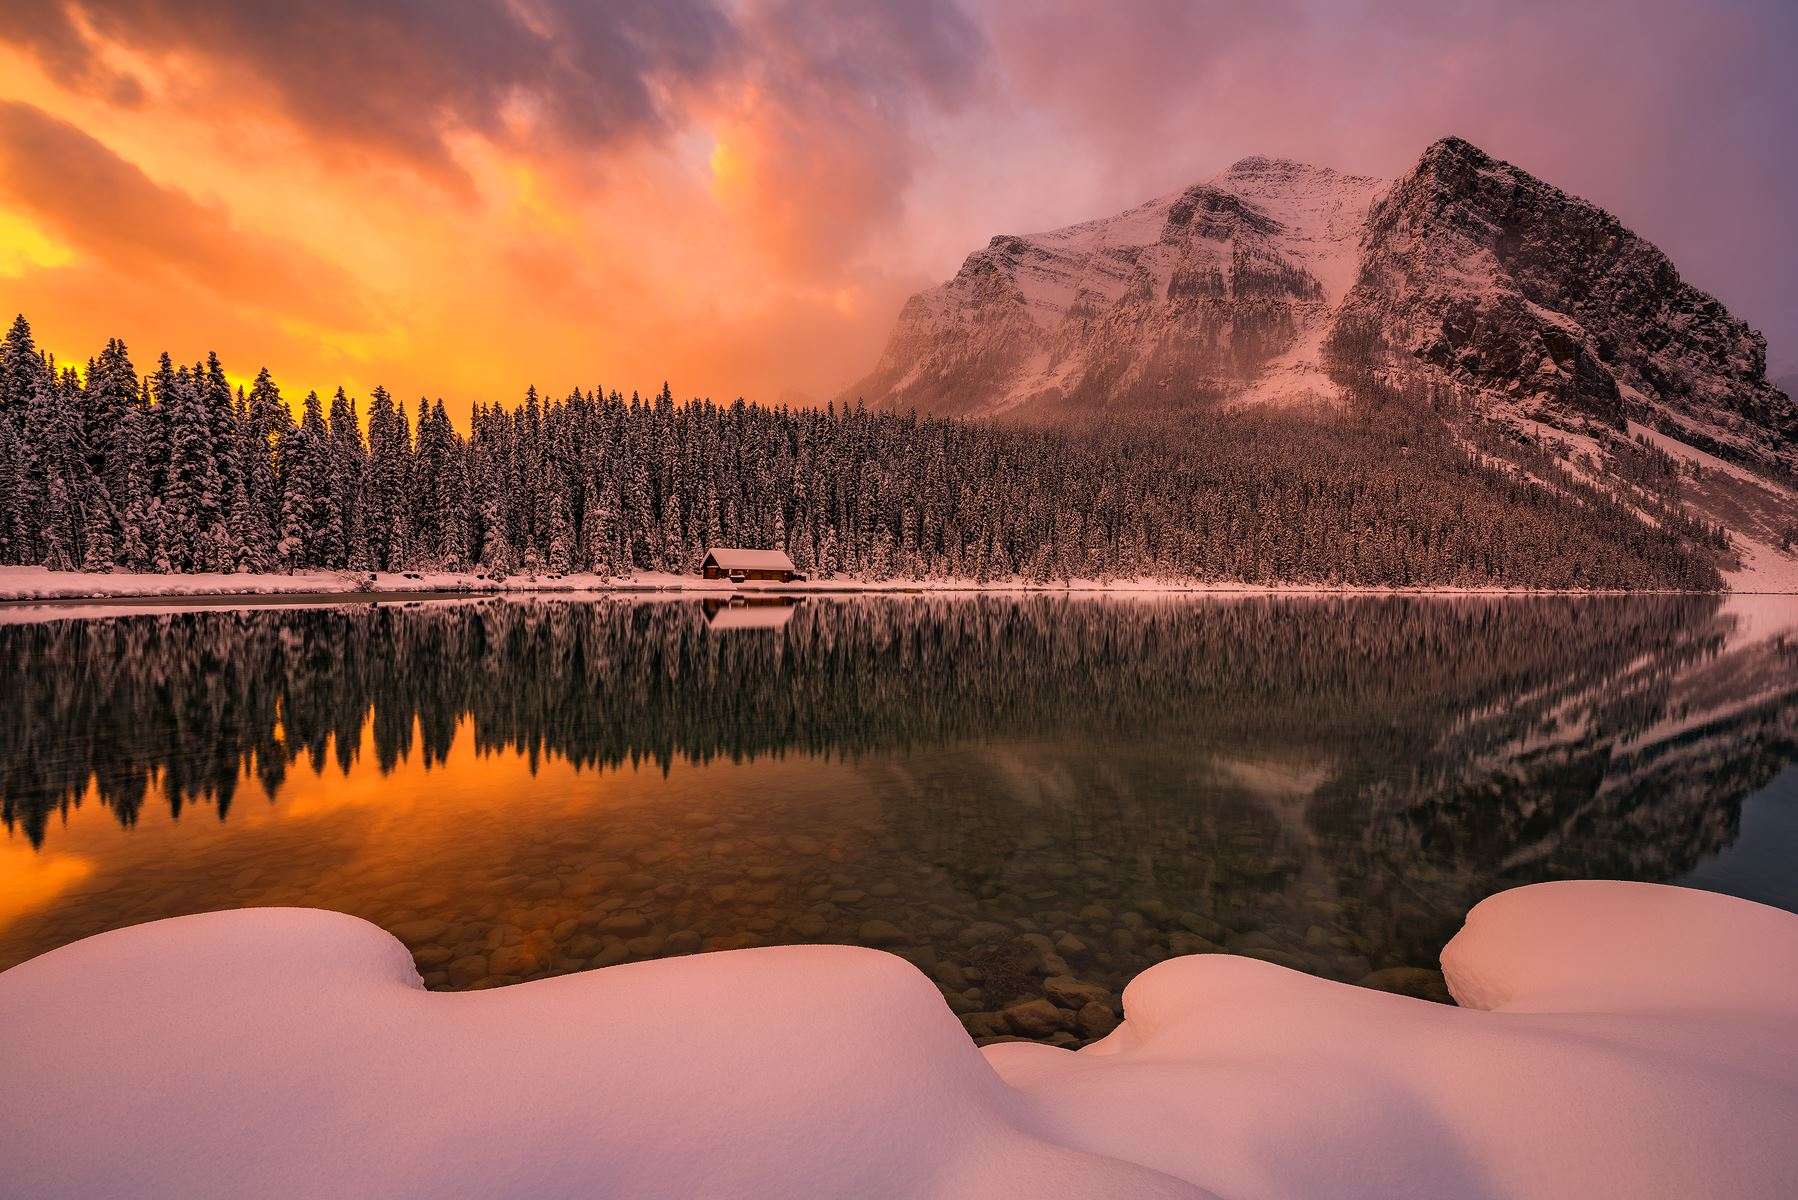 A winter sunrise during subzero temperatures at Lake Louise in Banff National Park . Nikon D810 | Nikon 14-24mm